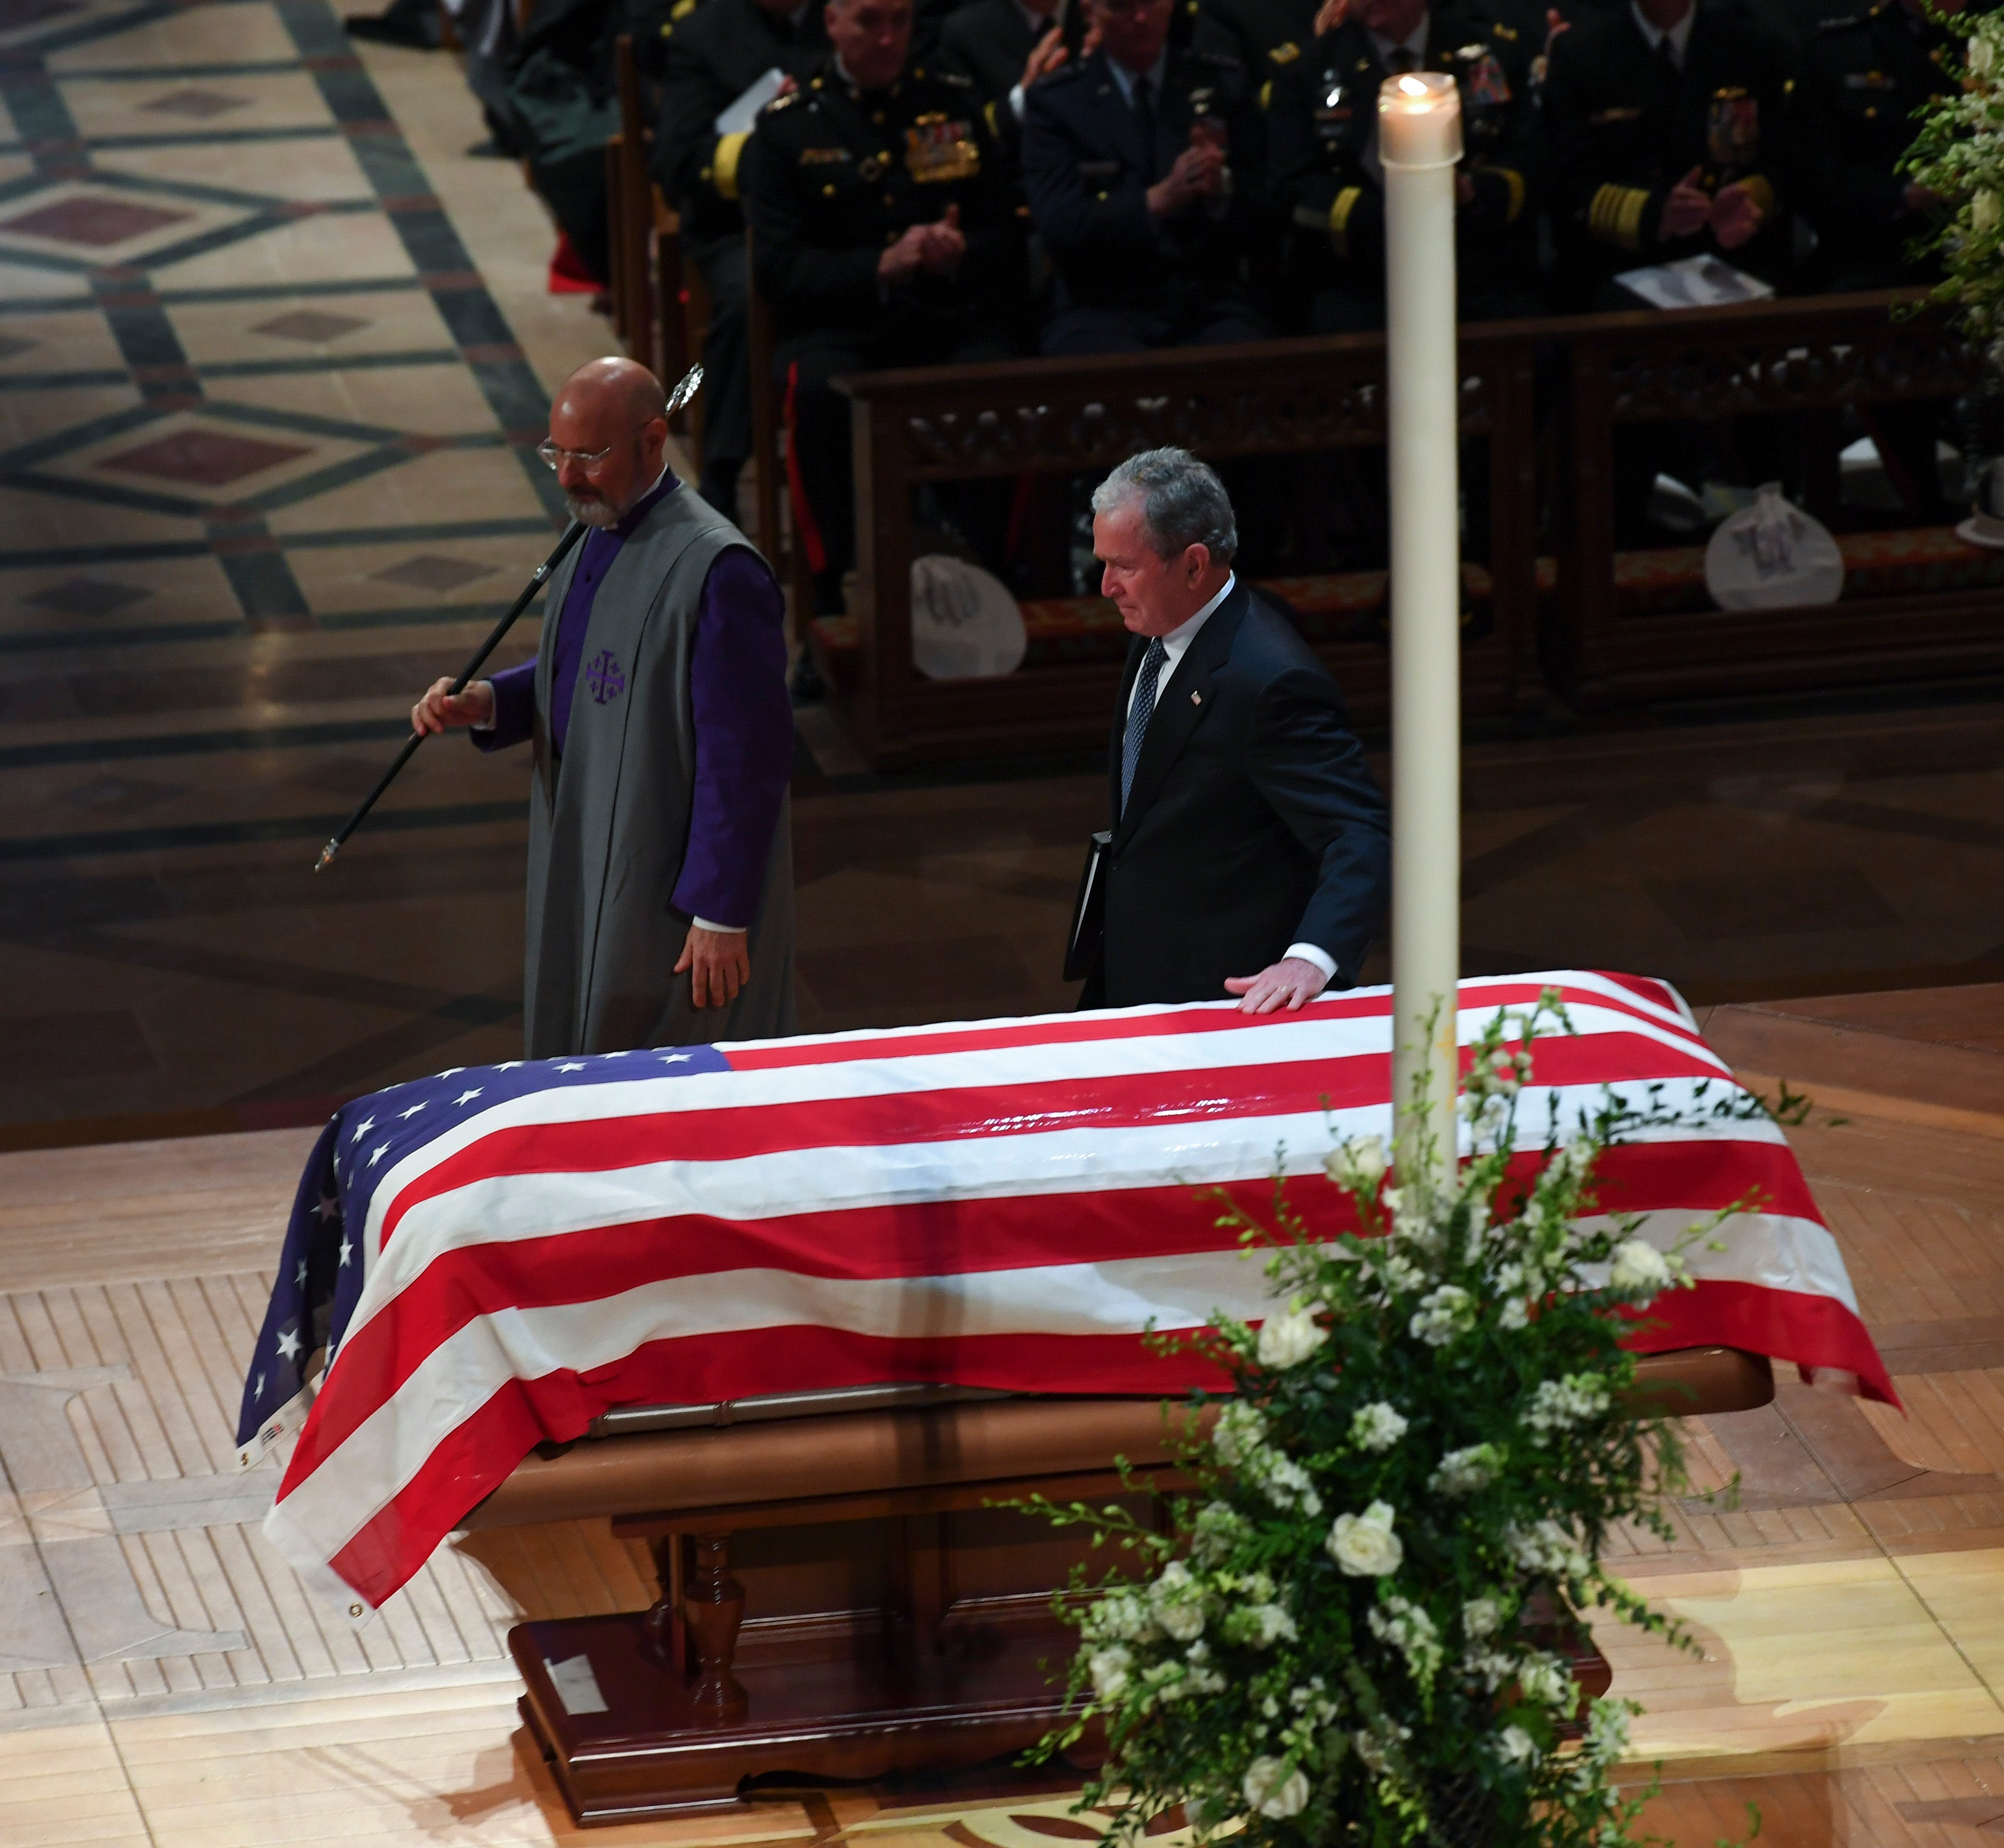 George H.W. Bush laid to rest, Golden Globe nominations: 5 things you need to know Thursday